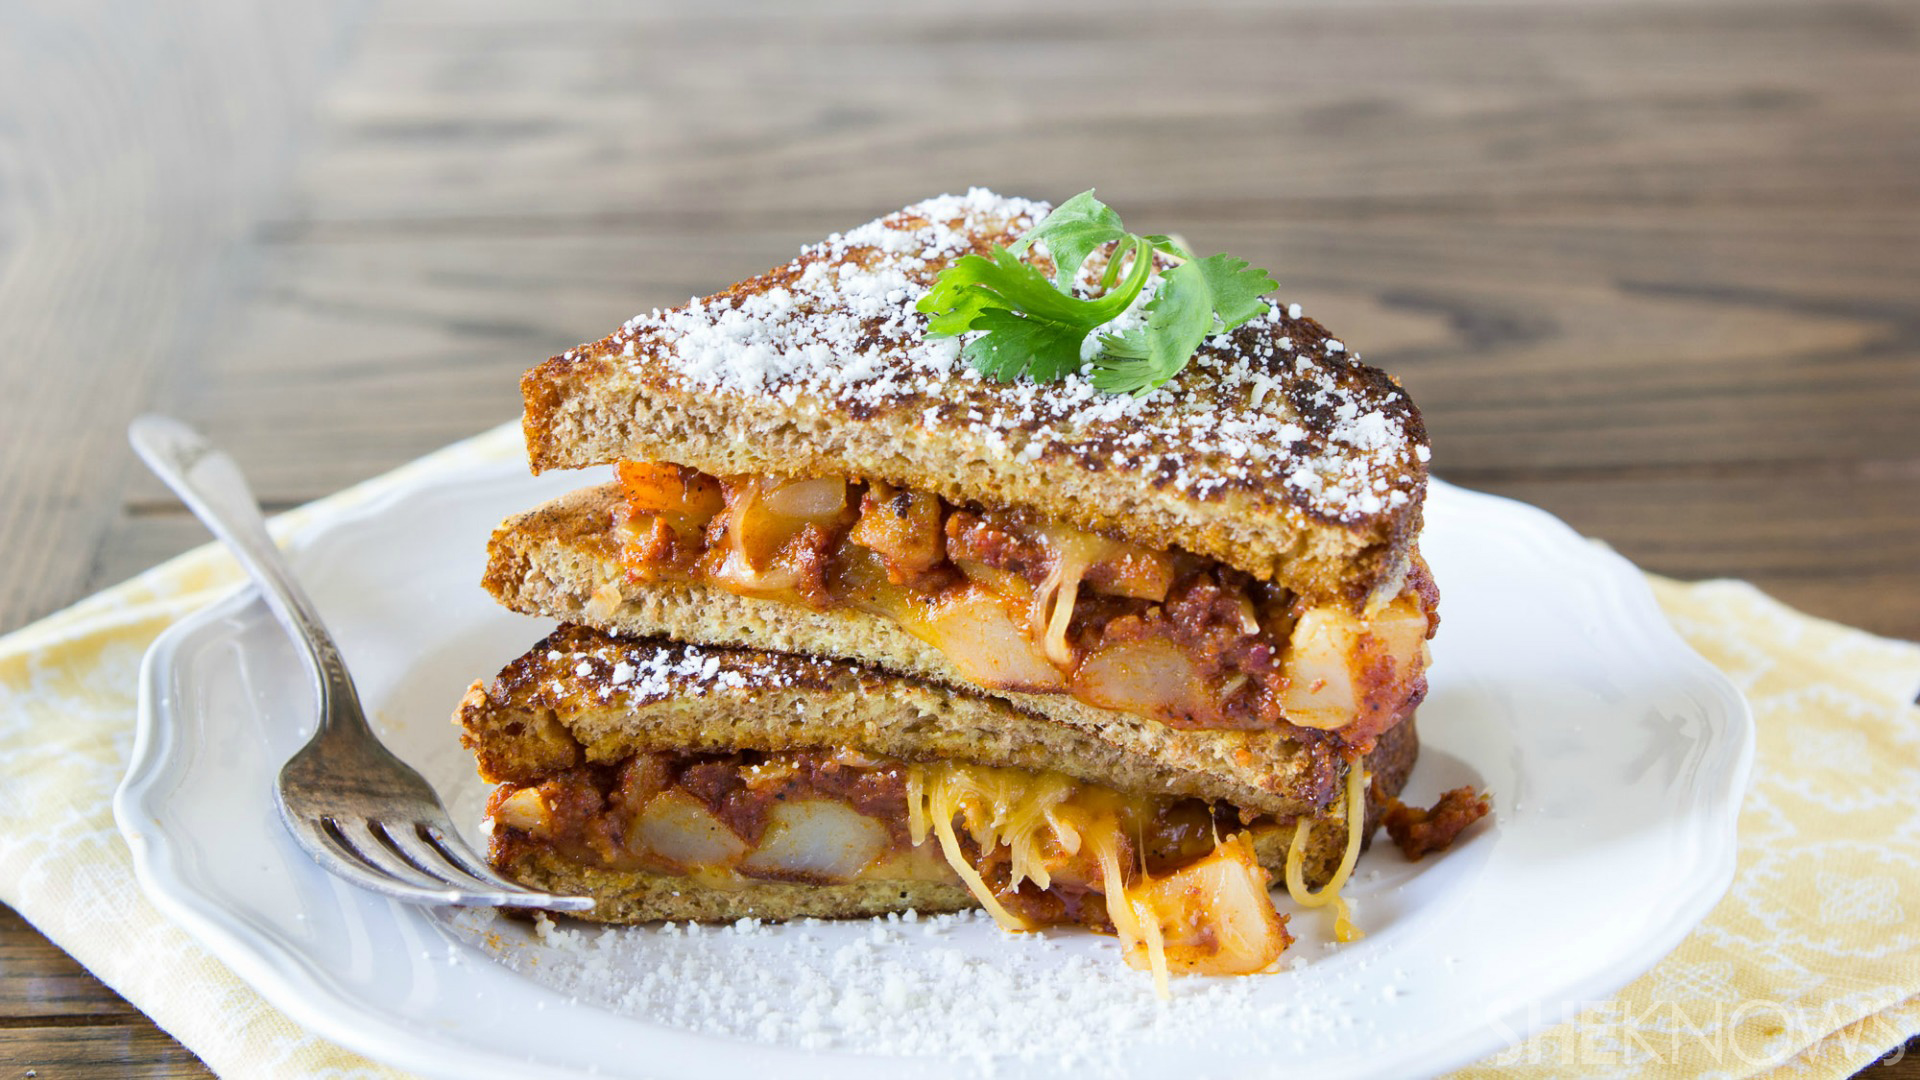 Mexican style stuffed french toast